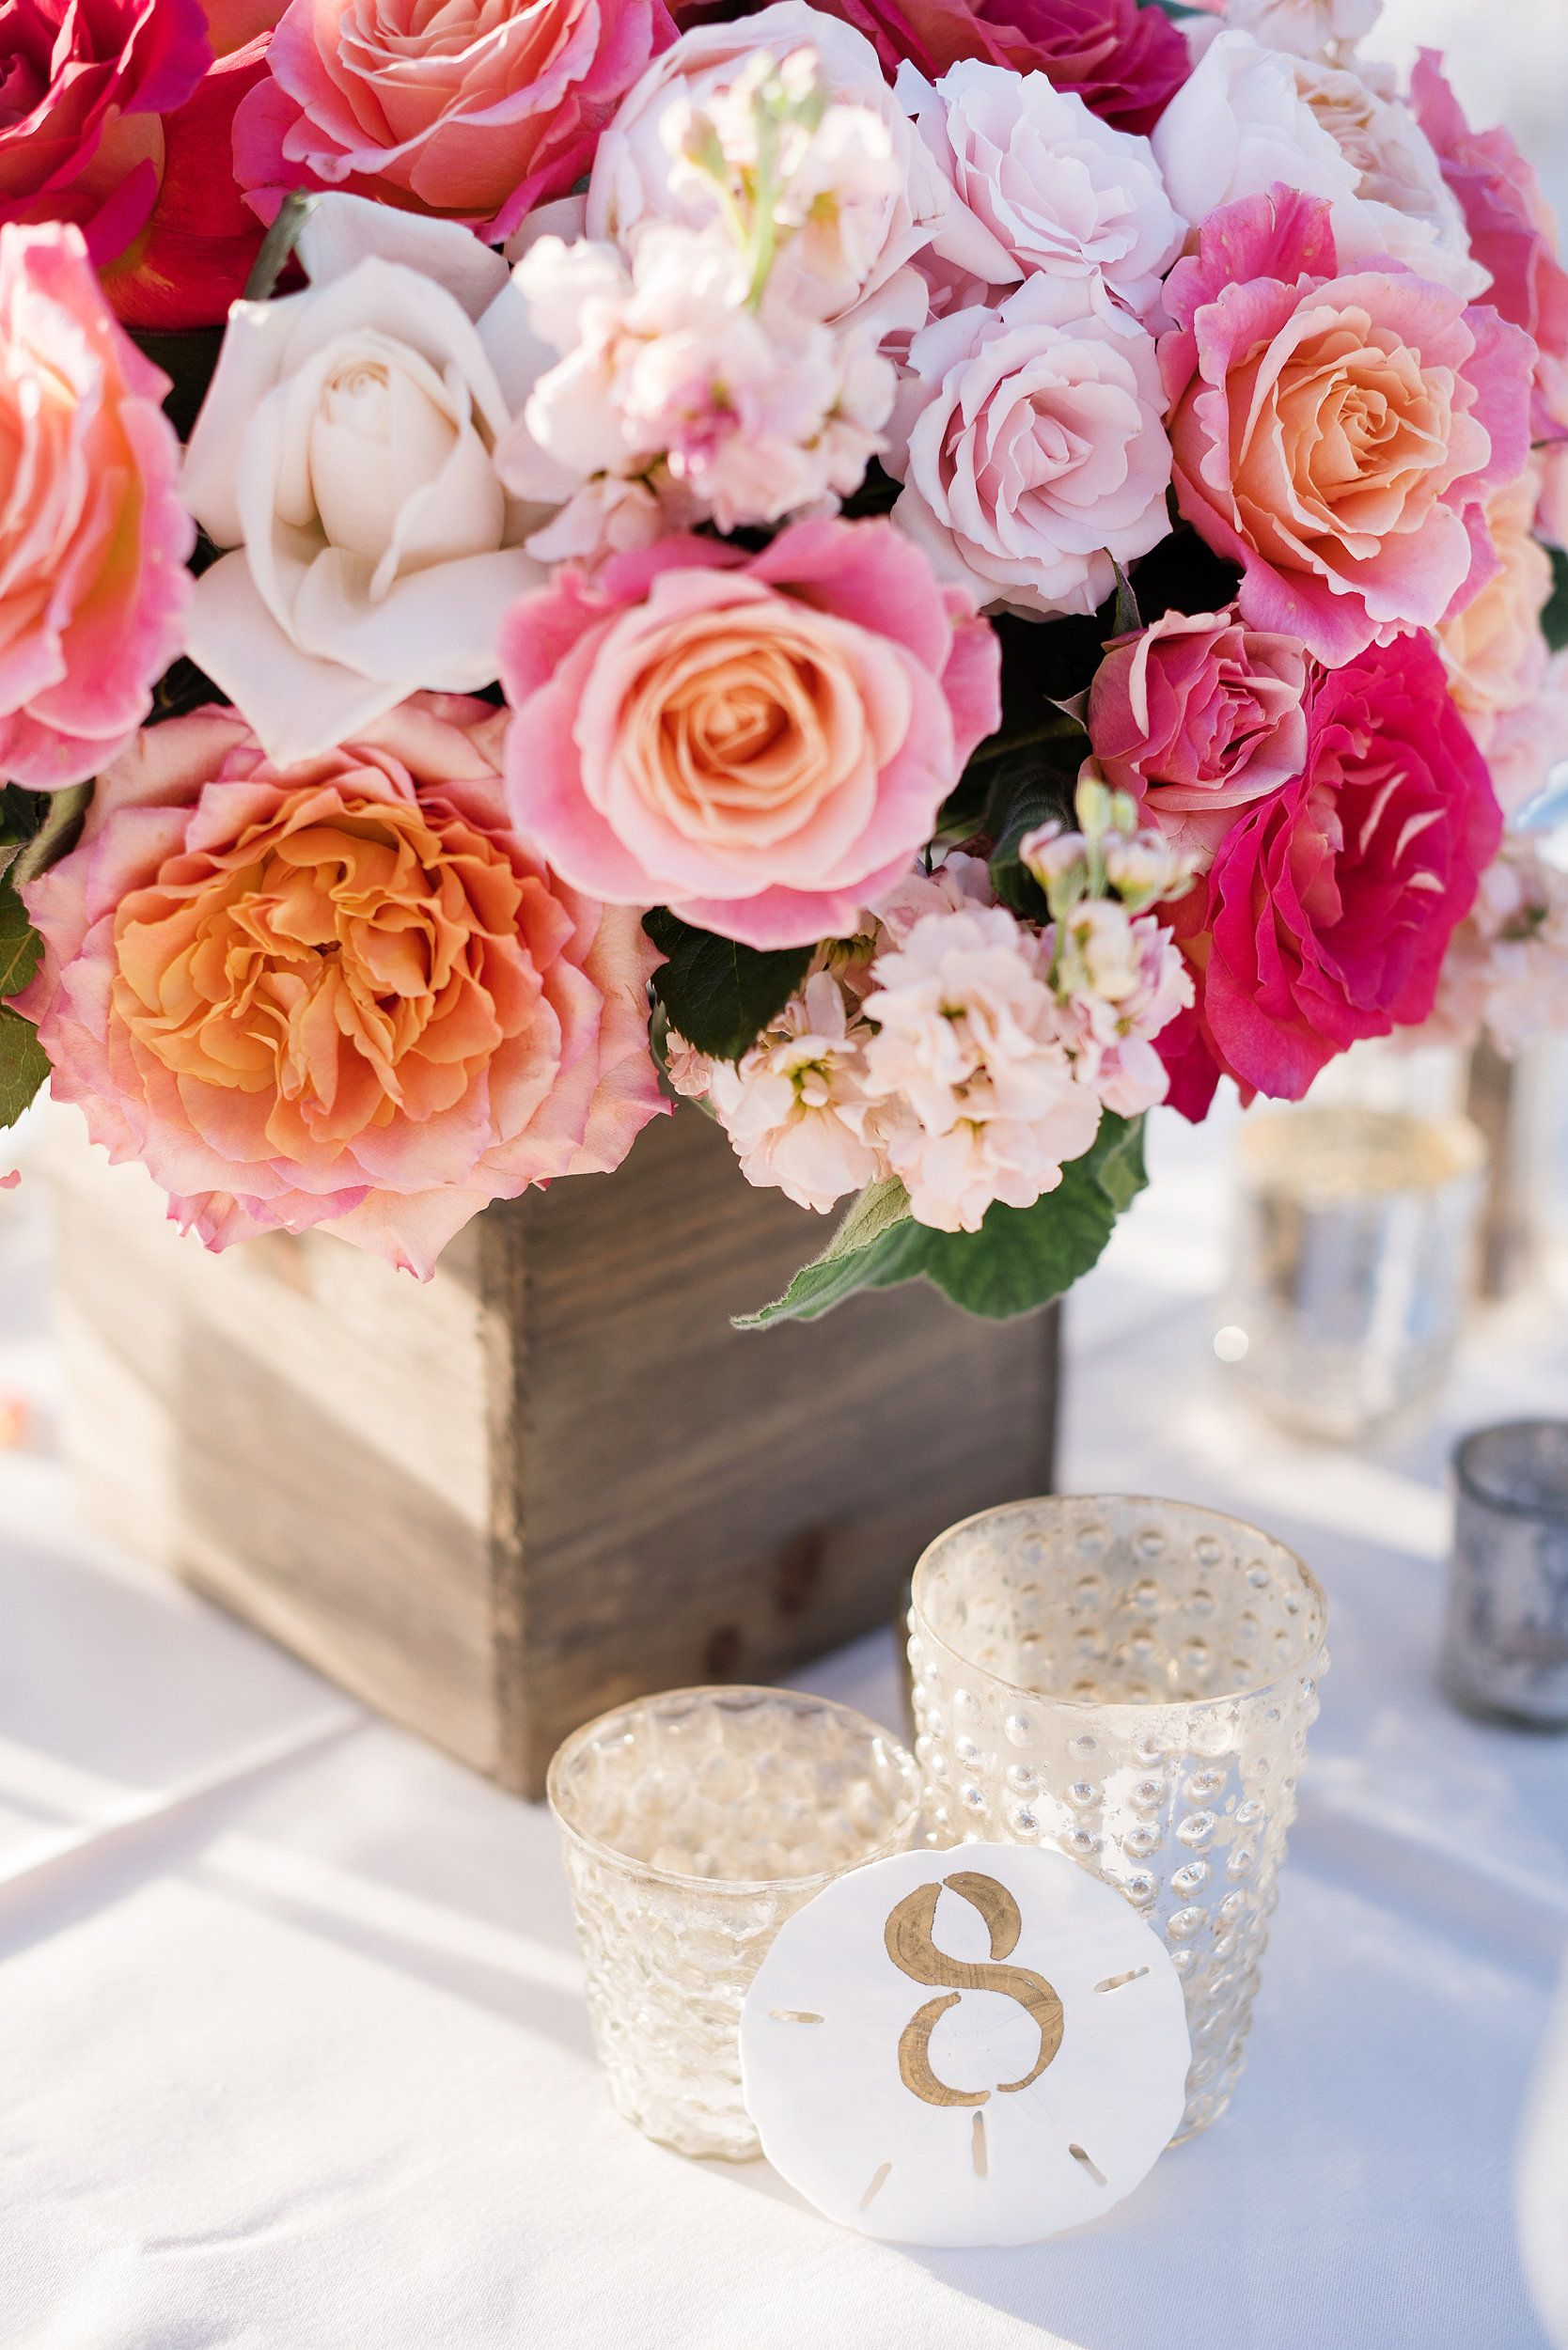 Bright and beautiful wedding table decorations - L'Auberge Del Mar